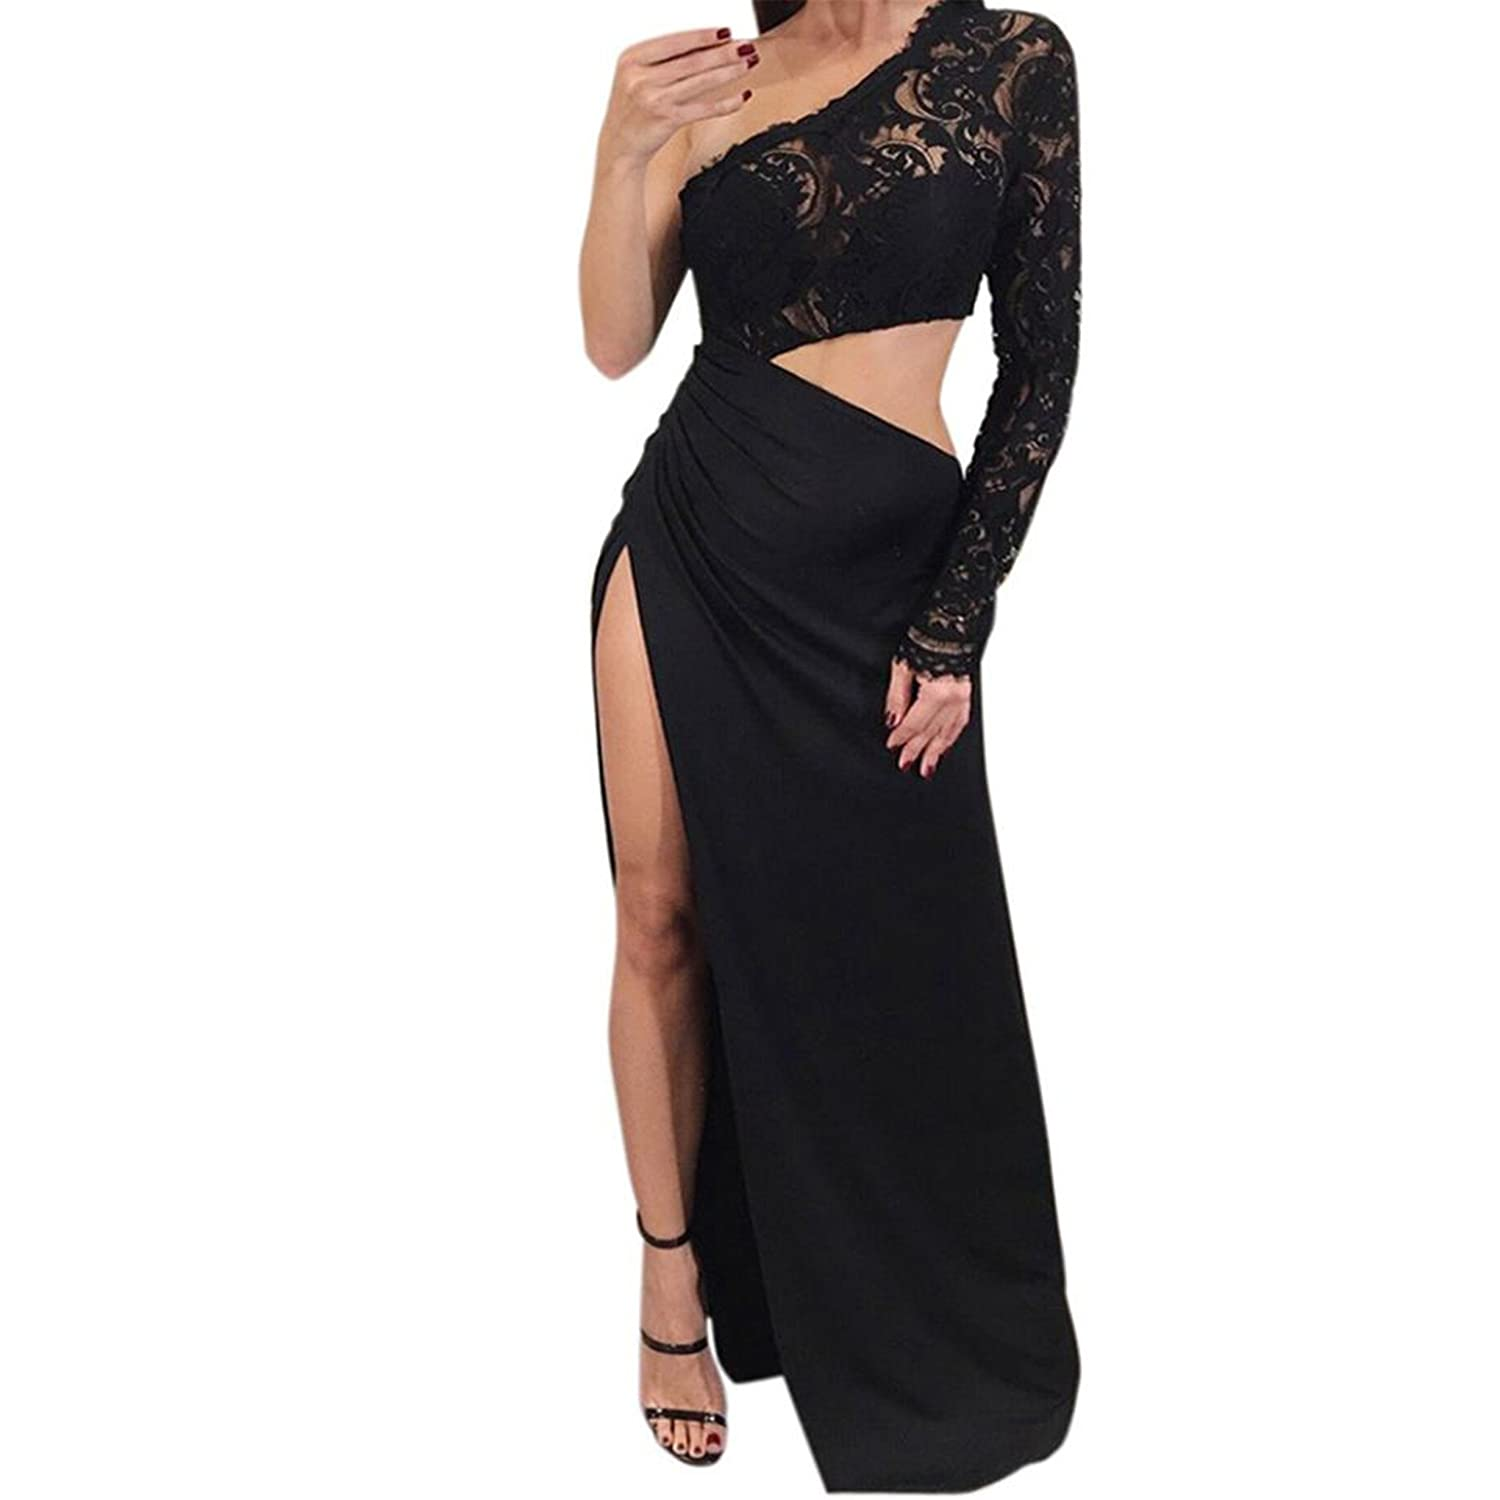 f338c3f0a39 Hey,Pretty Girl! Londony x2764;xFE0F; Women's Fashion Party Night Club Sexy  Lace Backless With Open Side Long Black Dress - Black -: Amazon.co.uk:  Clothing